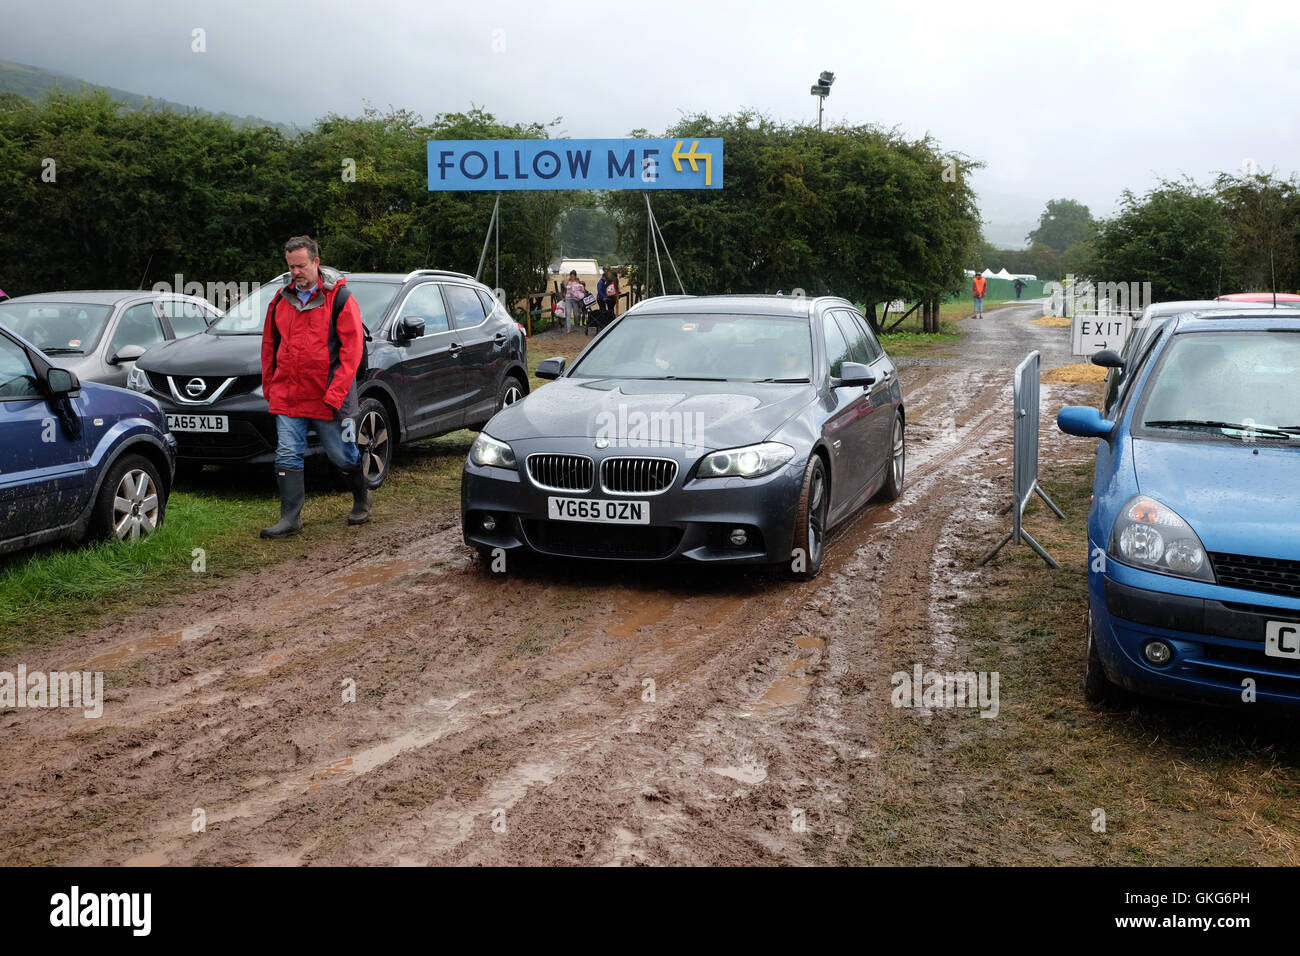 Glastonbury Staff Car Park